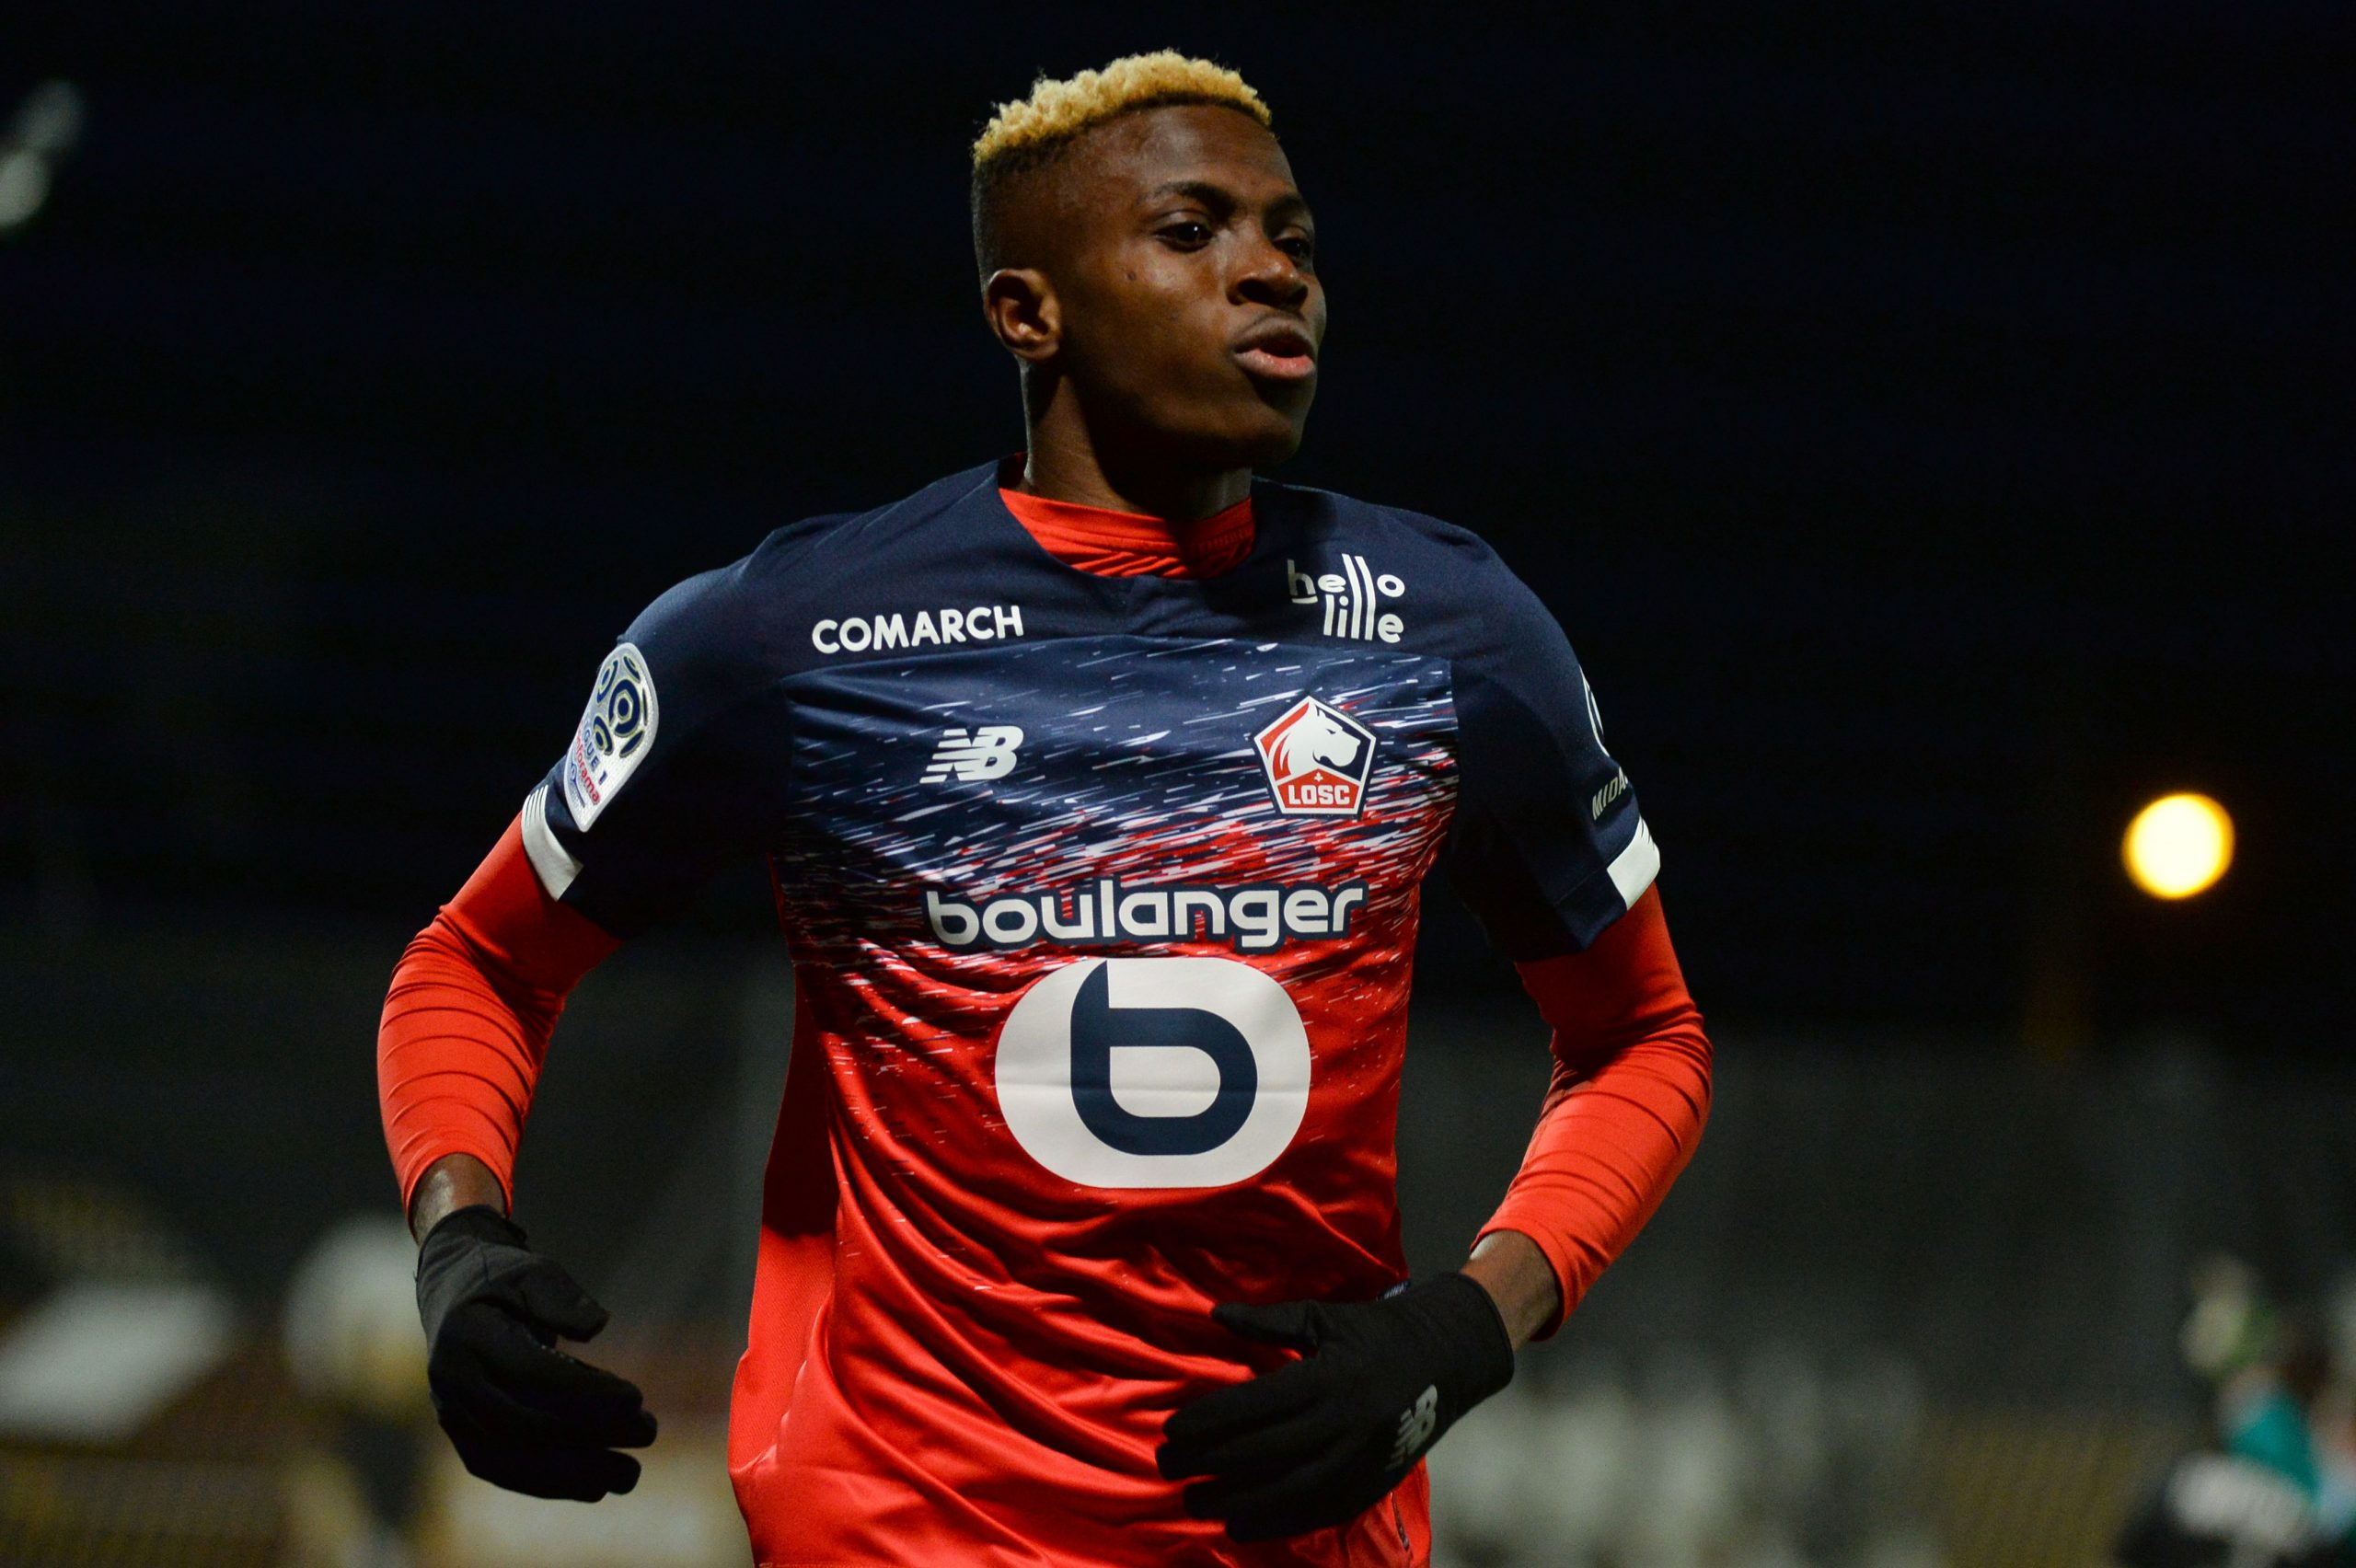 Victor Osimhen has impressed for Lille in Ligue 1